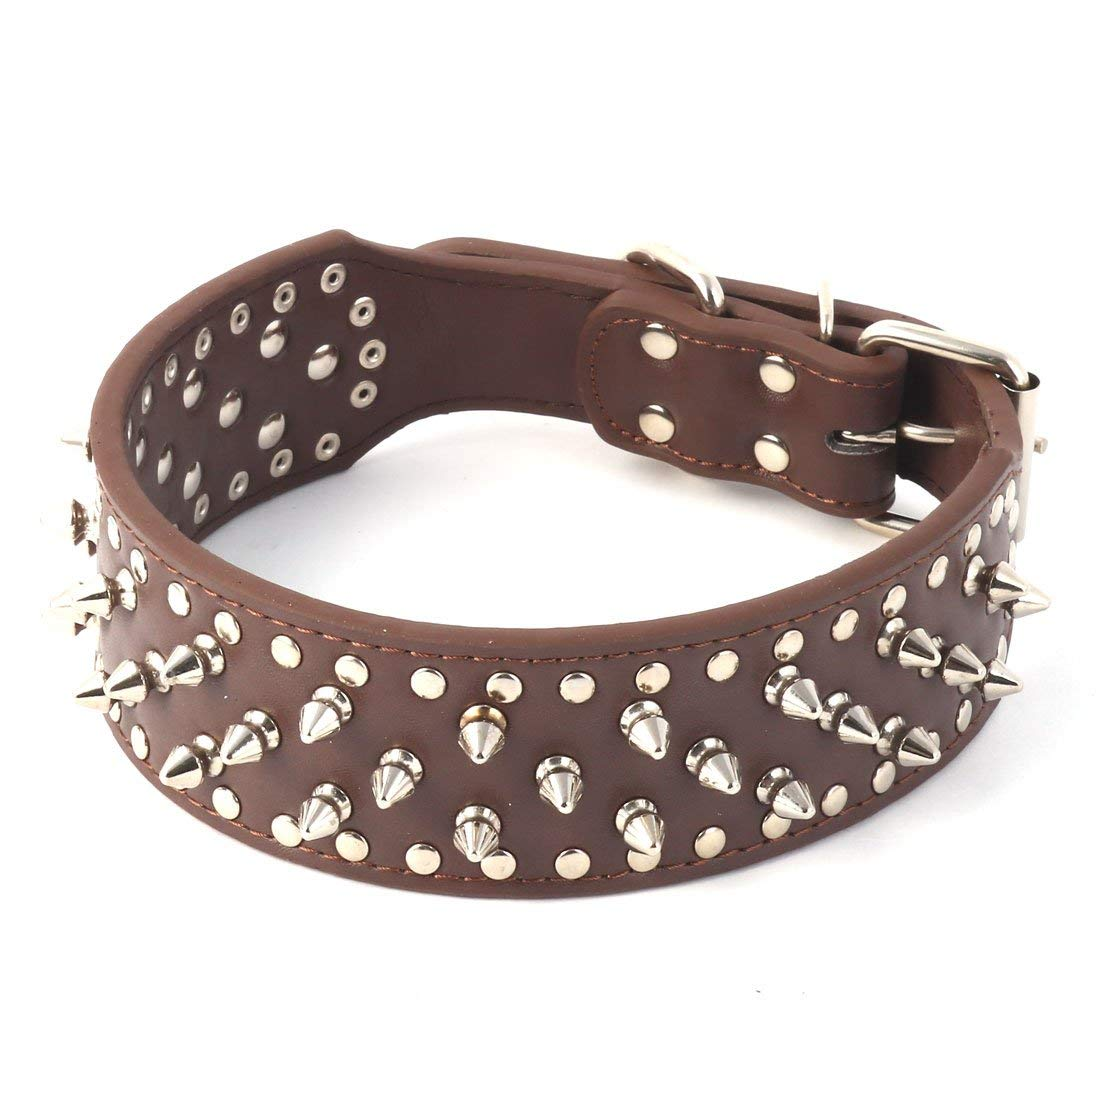 Faux Leather Pet Supplies Metal Rivets Studded Spiked Dog Cat Neck Strap Buckle Collar